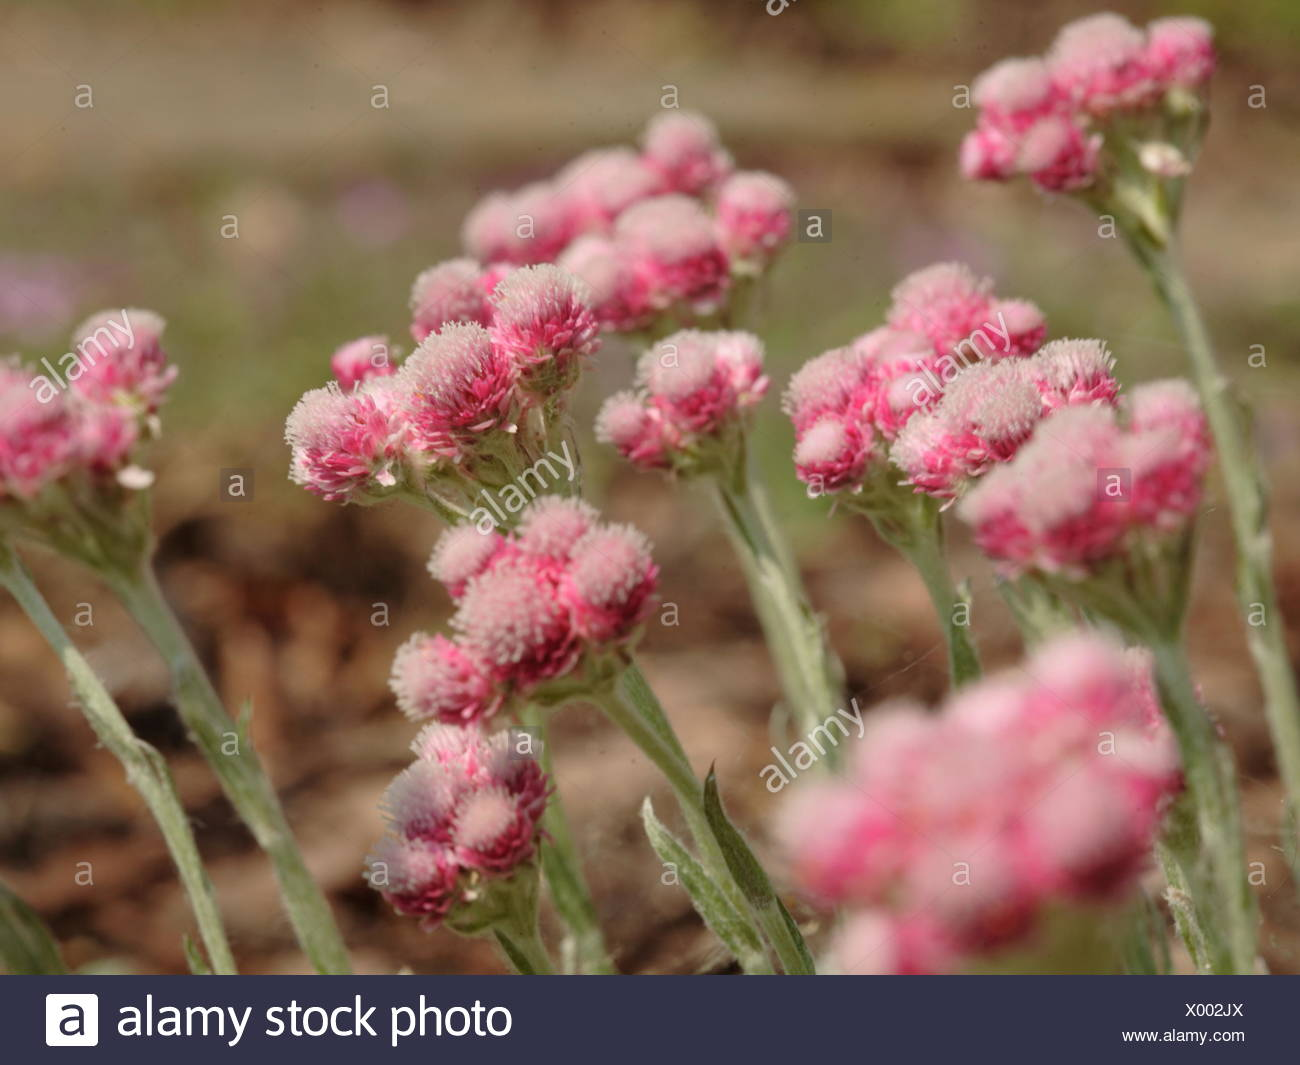 Catsfoot -Antennaria dioica 'Rotes Wunder' - Stock Image